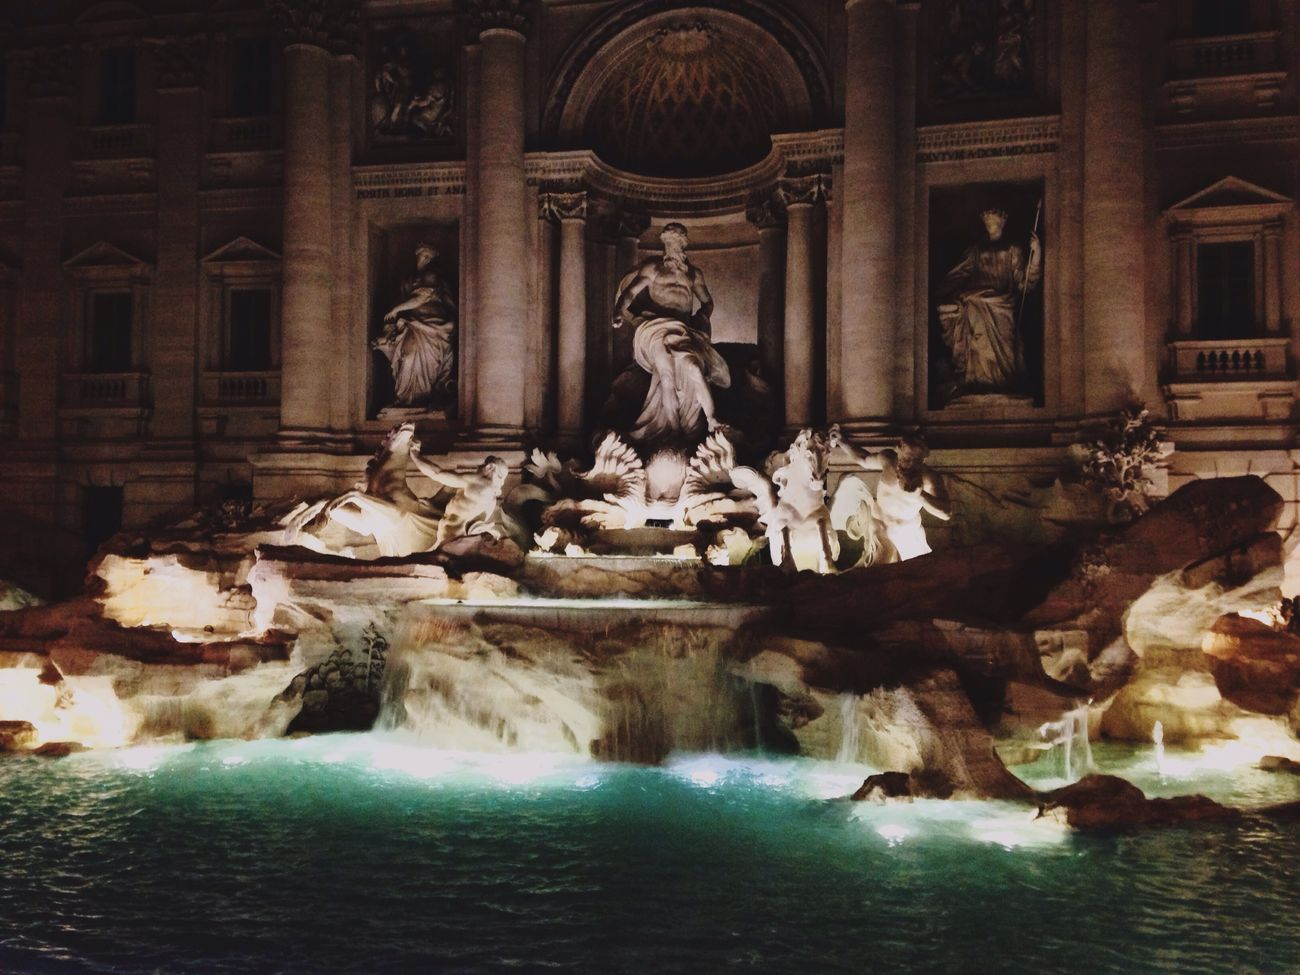 Fontana de trevi Statue Art And Craft Creativity Fountain Tourism Architecture No People Sculpture